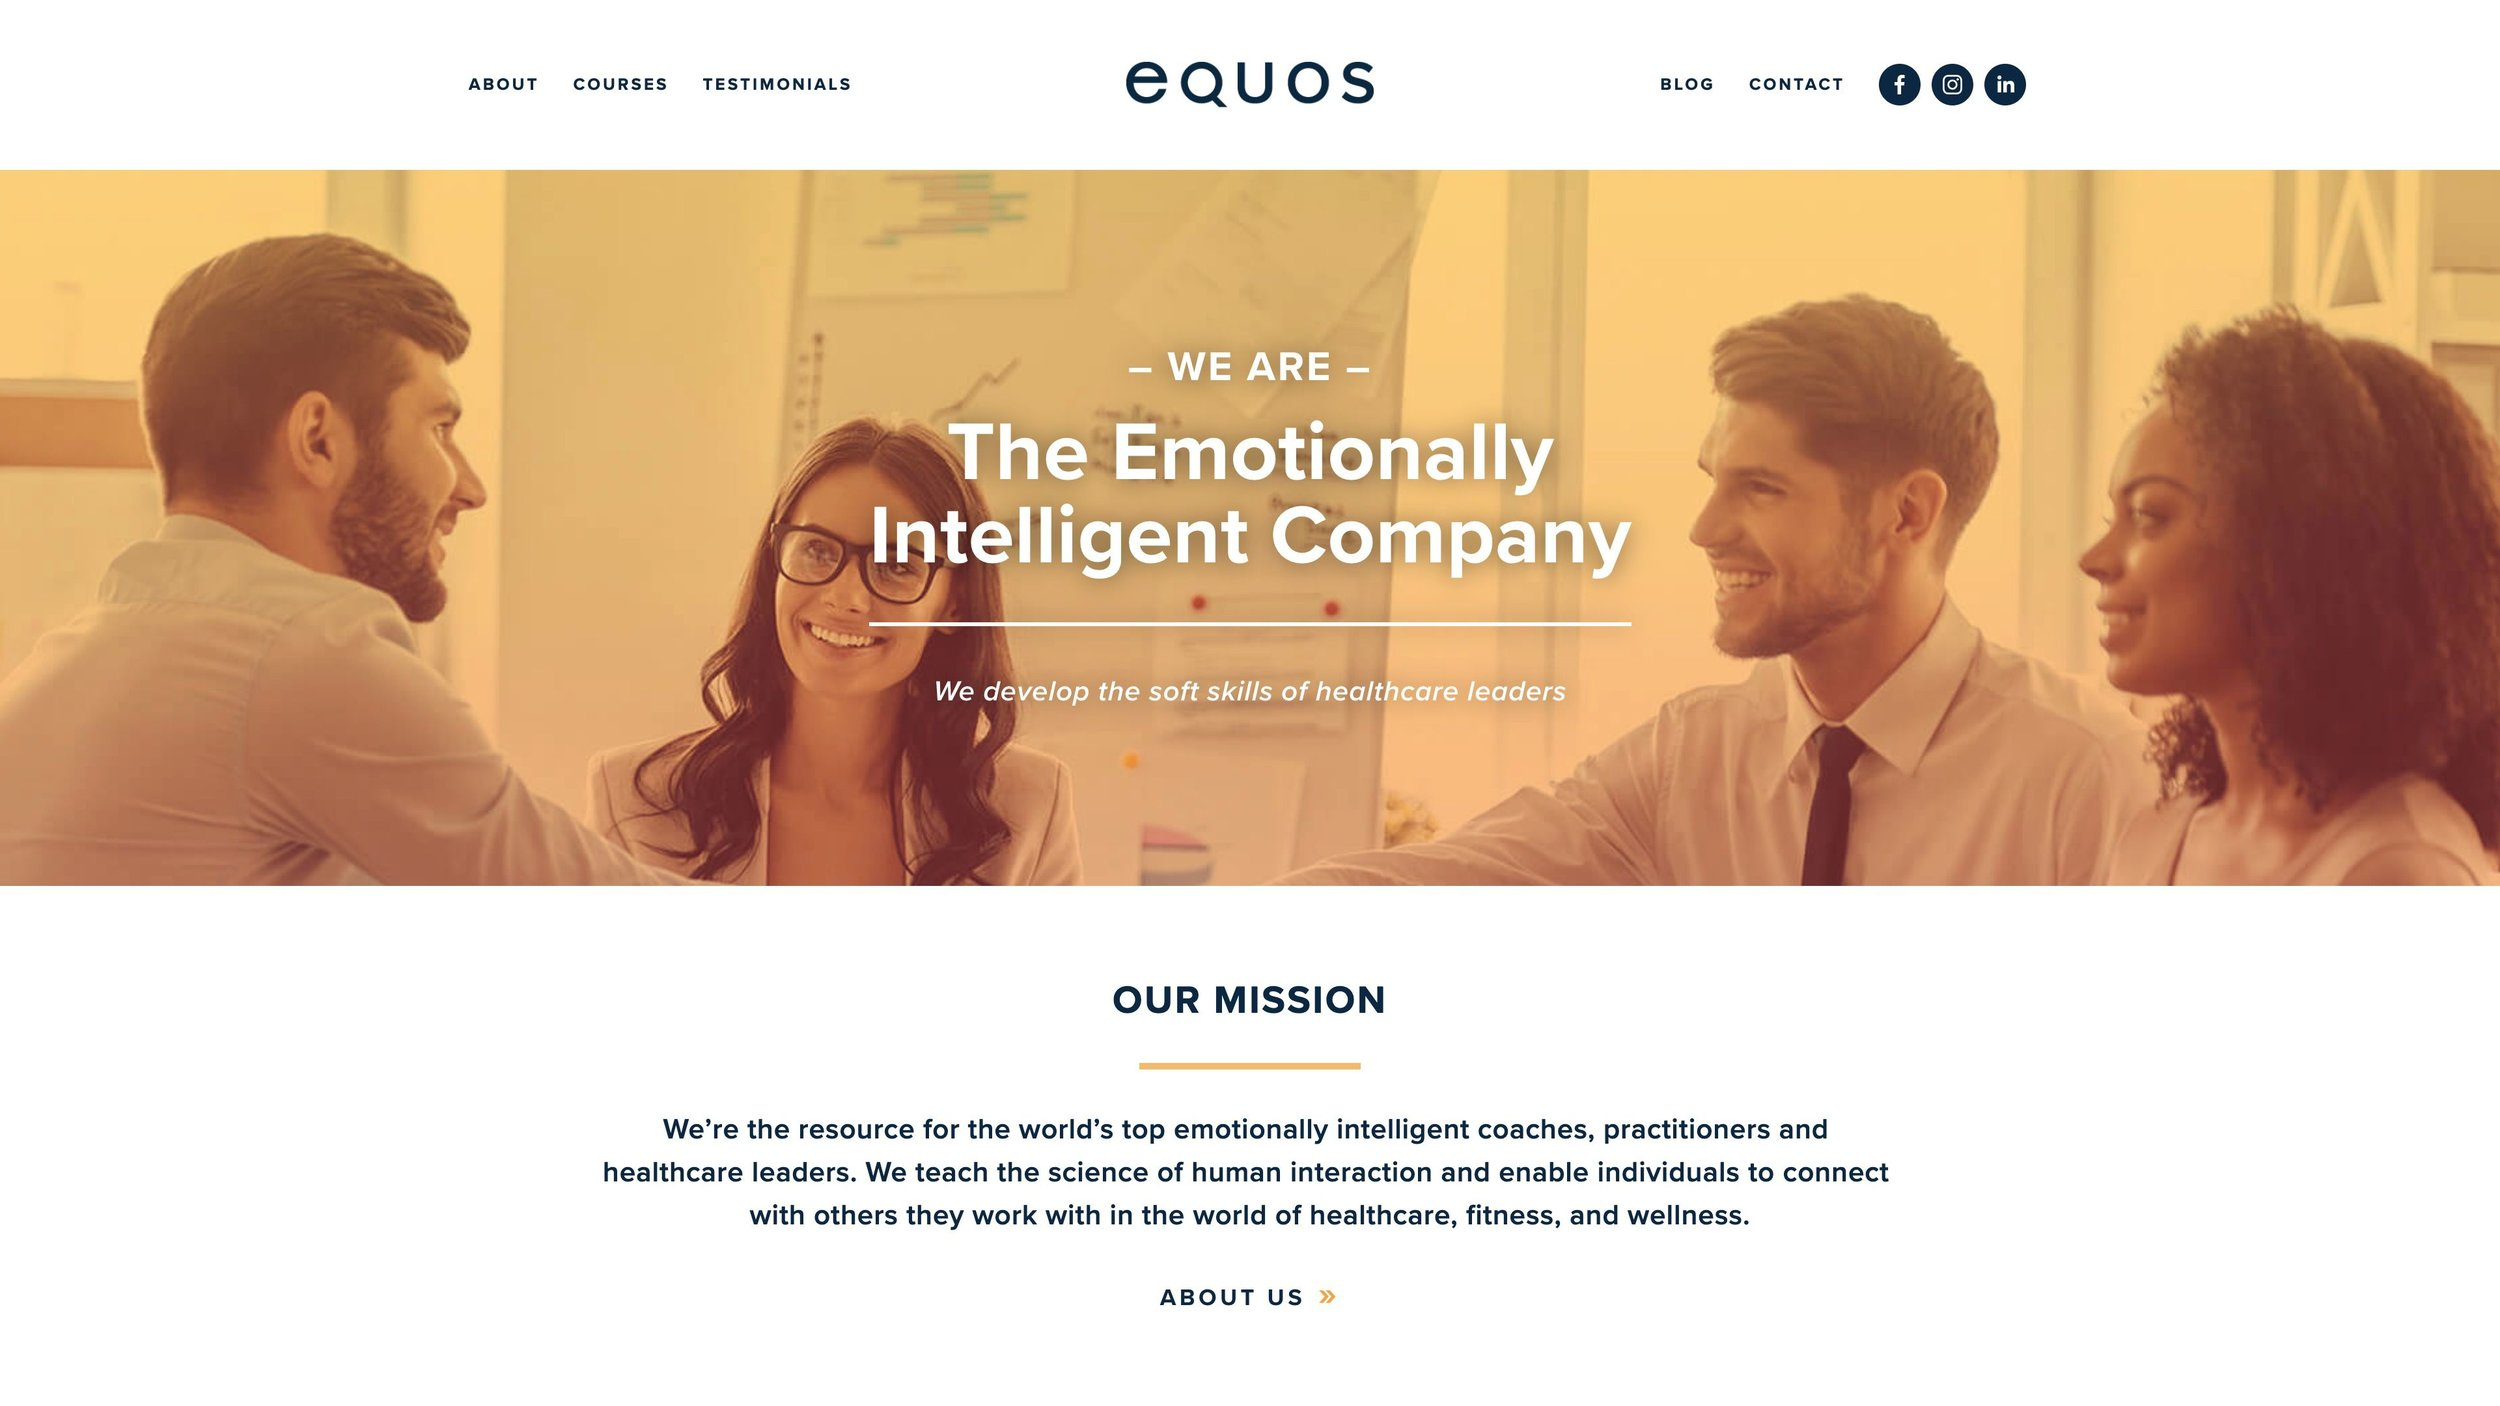 home-featured_equos-emotionall-intelligence_aniagency-squarespace-designer-developer.jpg